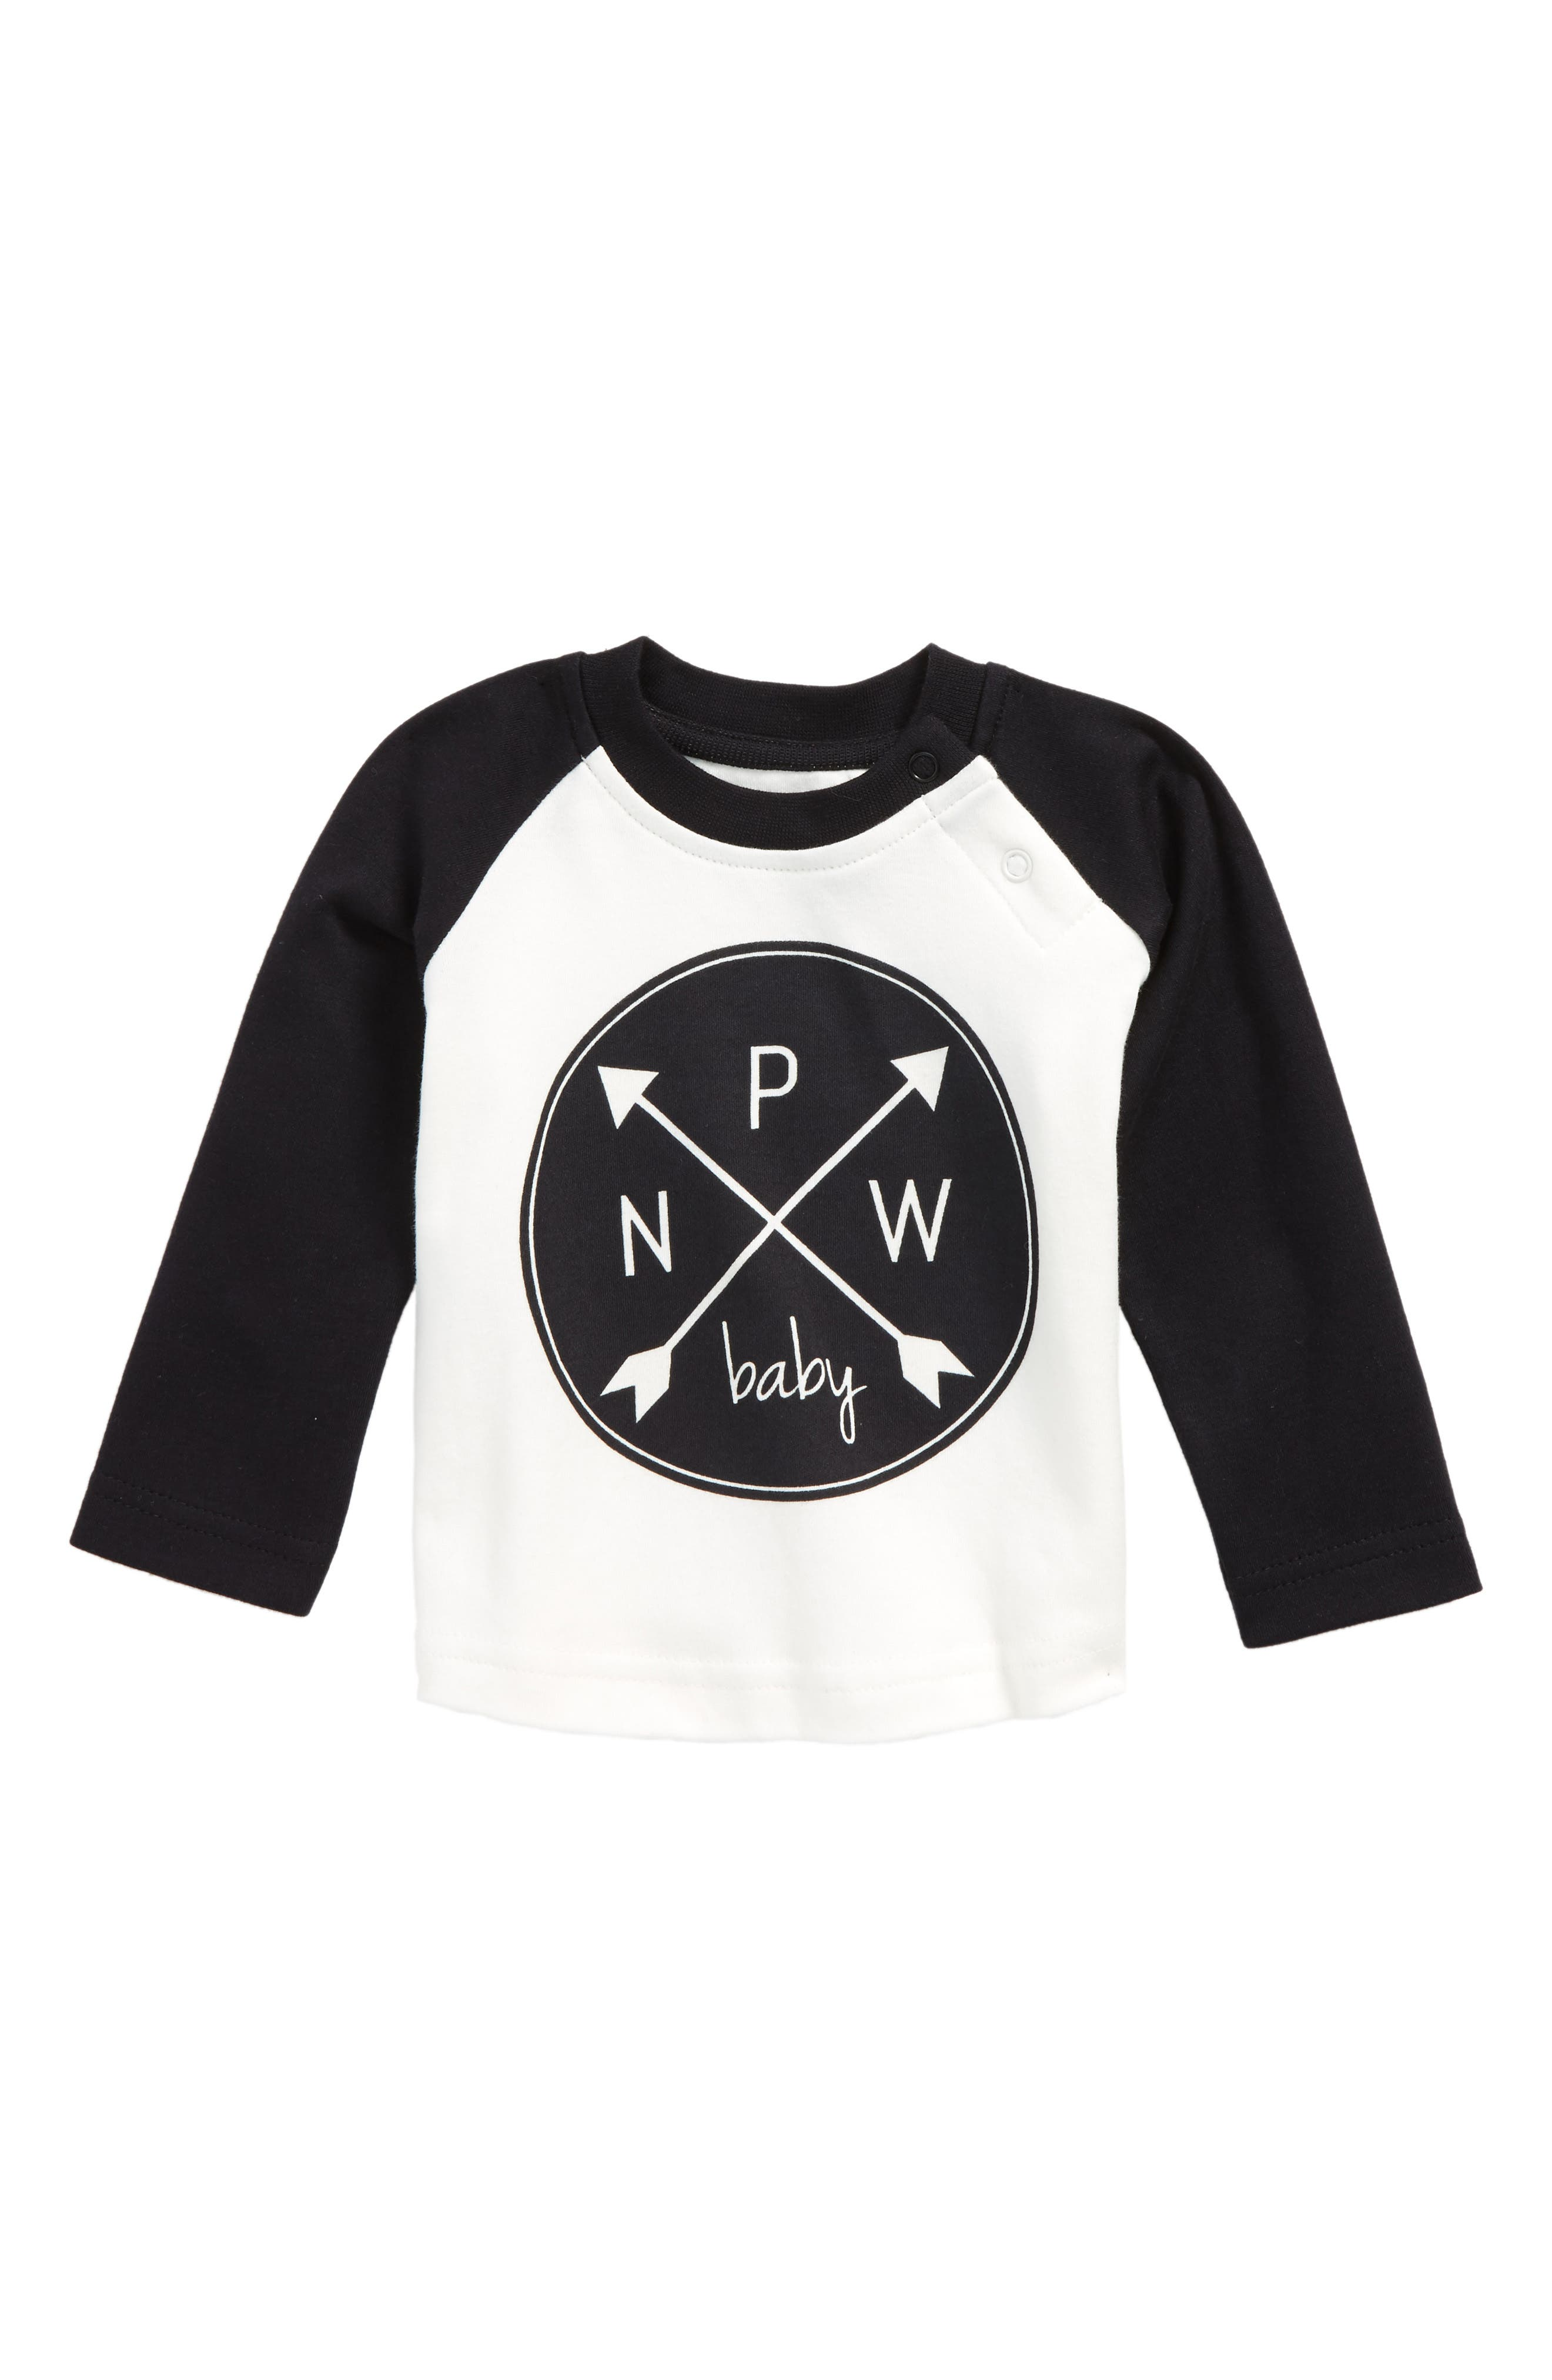 PNW Logo Organic Cotton T-Shirt,                         Main,                         color, Black/ Offwhite